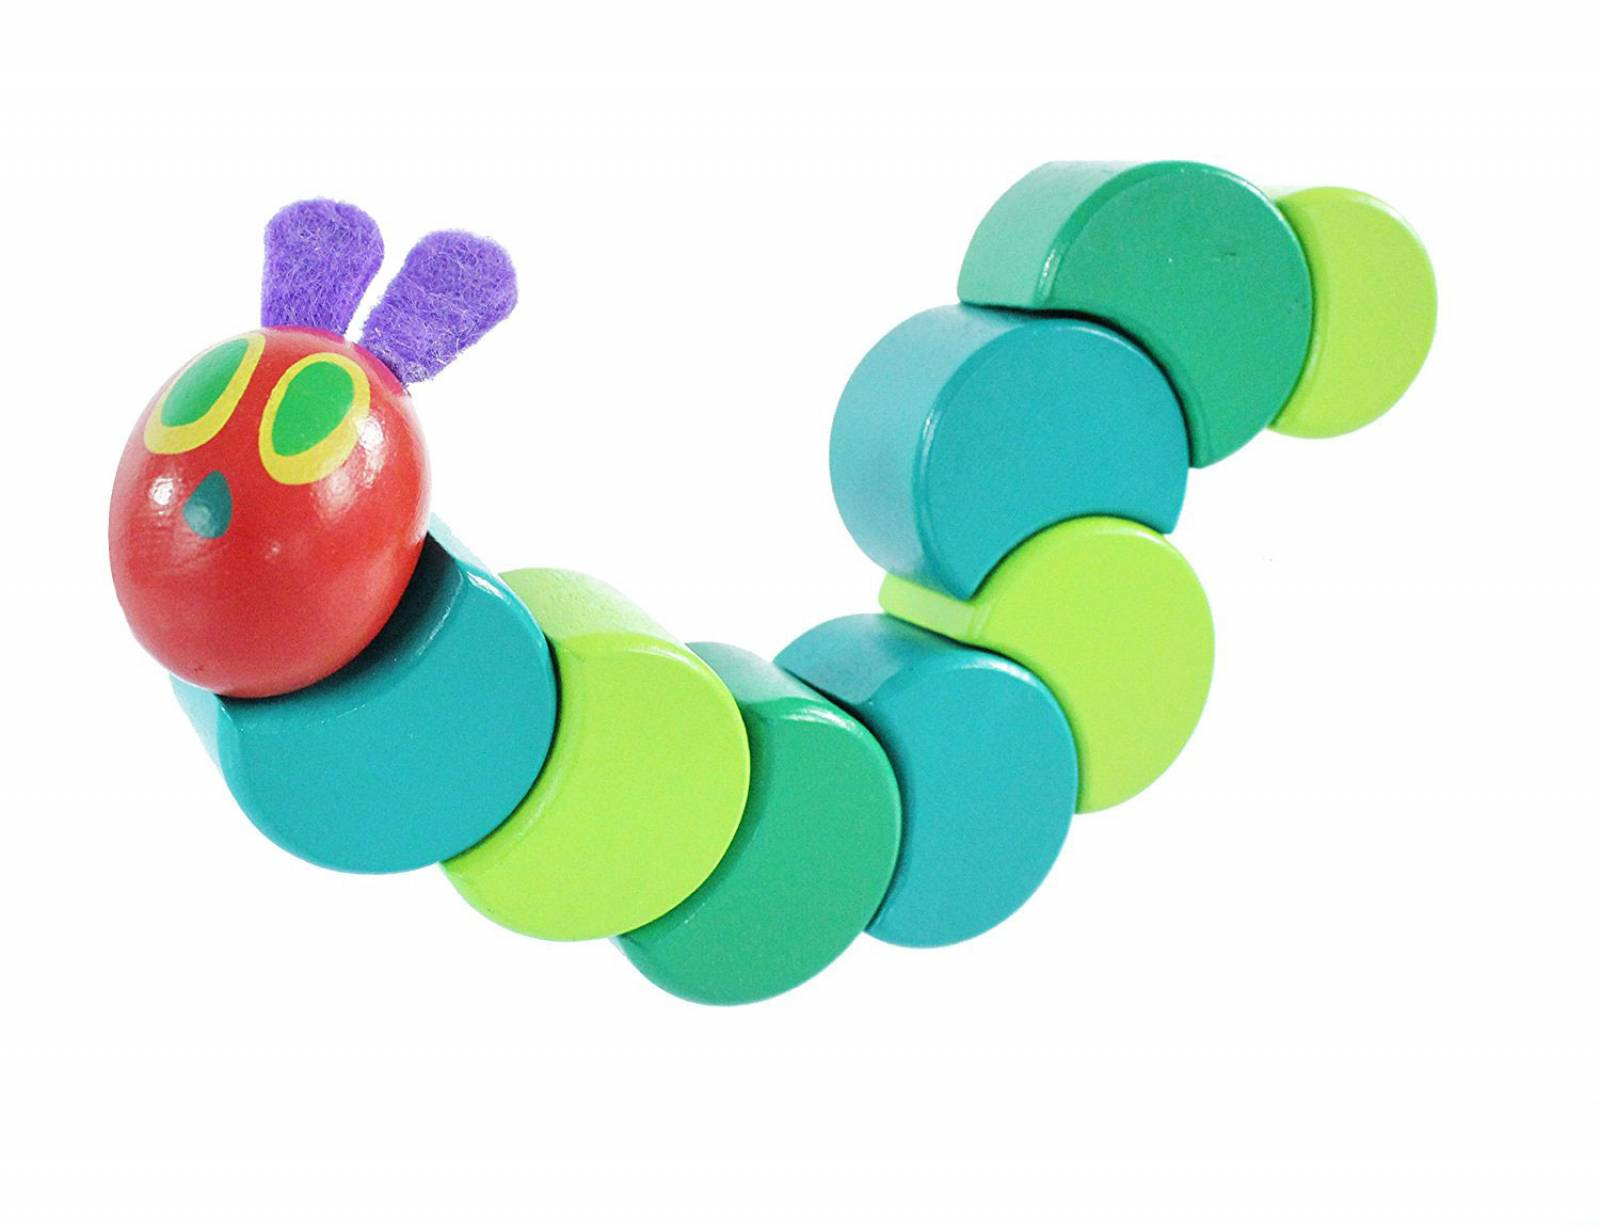 The Very Hungry Caterpillar Wooden Grasp & Twist Toy thumbnails